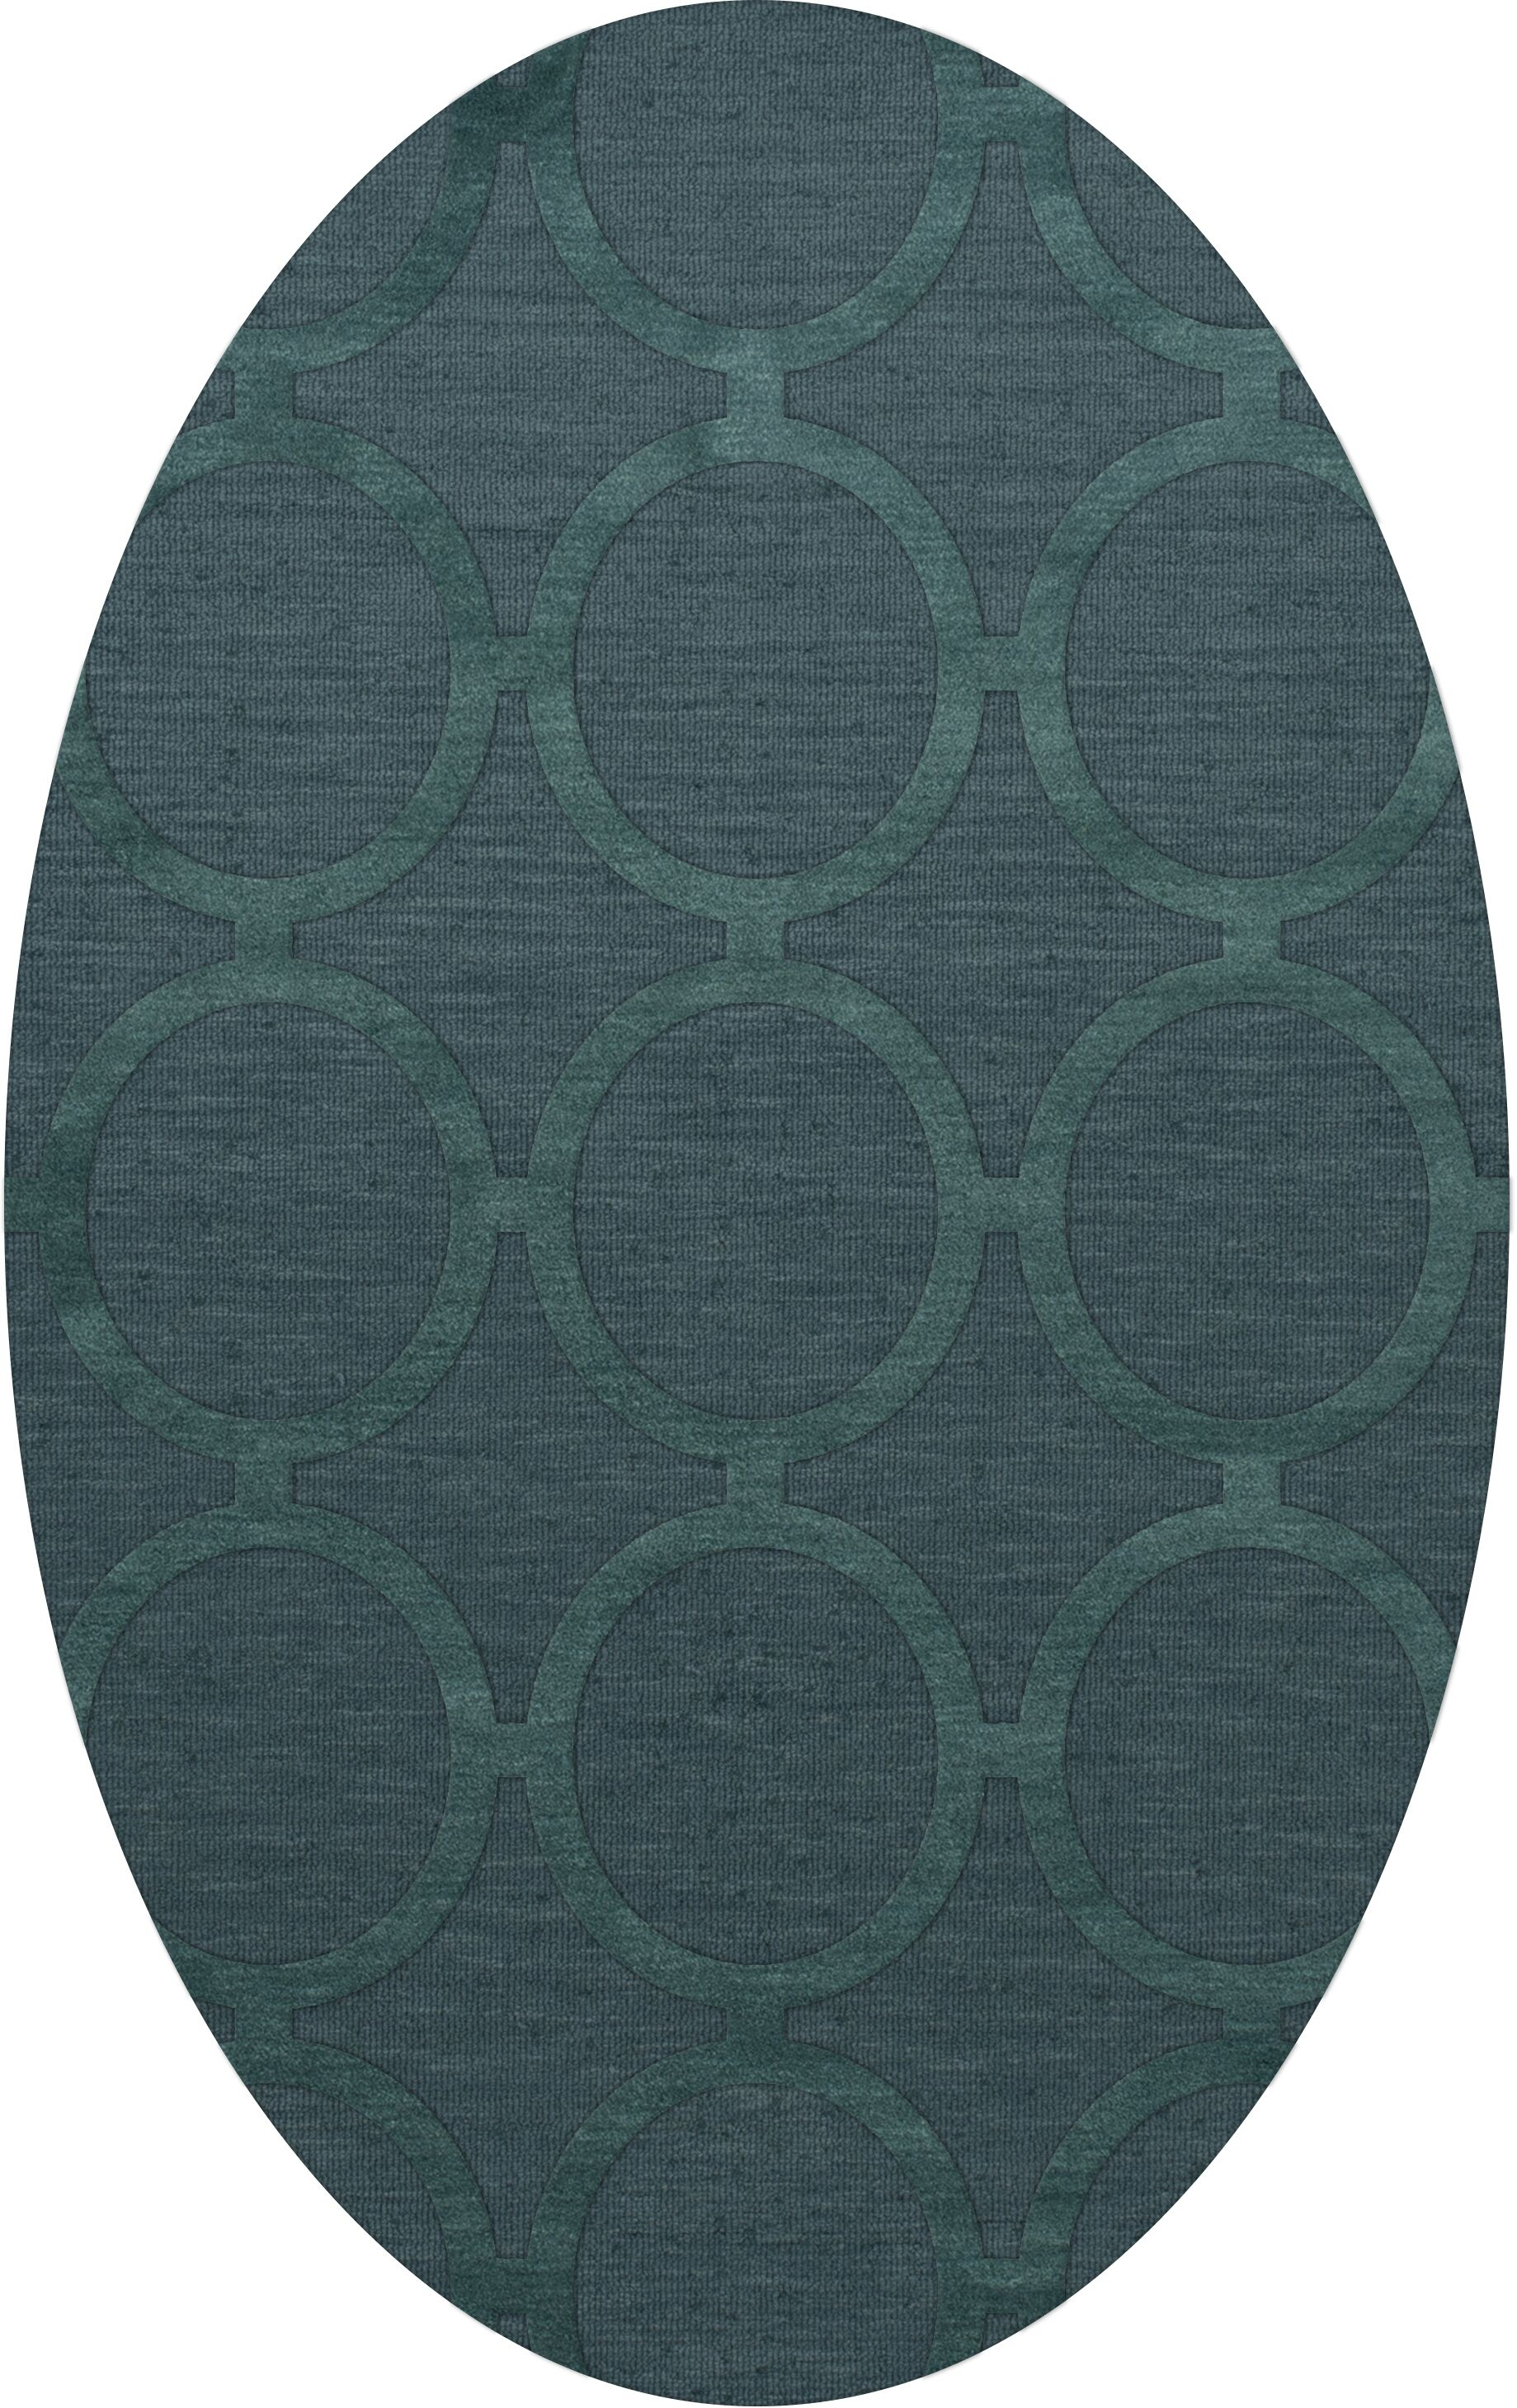 Dover Tufted Wool Teal Area Rug Rug Size: Oval 4' x 6'